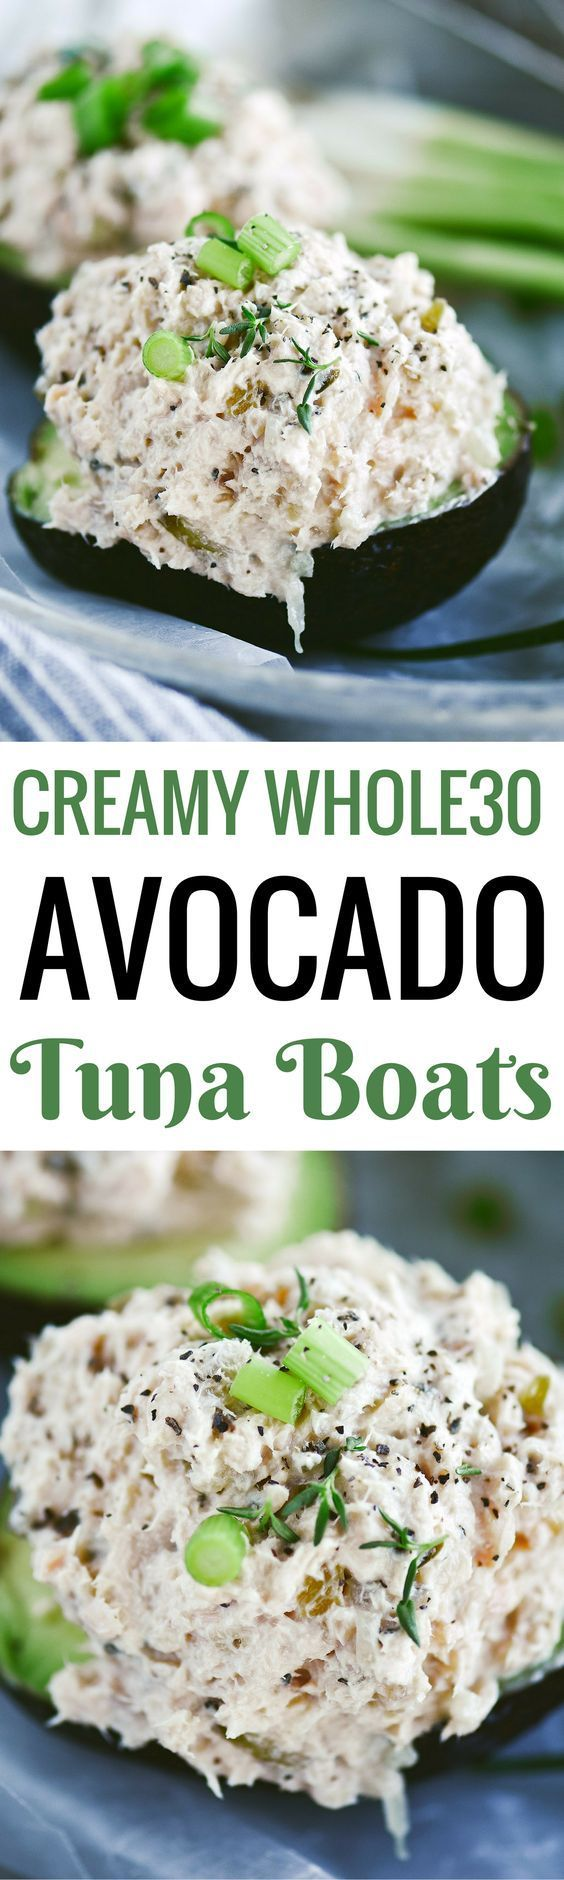 5 minute Whole30 lunch on the go! creamy whole30 tuna avocado boats- topped with fresh herbs and SO healthy and easy! Whole30 meal ideas. whole30 meal plan. Easy whole30 dinner recipes. Easy whole30 dinner recipes. Whole30 recipes. Whole30 lunch. Whole30 meal planning. Whole30 meal prep. Healthy paleo meals. Healthy Whole30 recipes. Easy Whole30 recipes. Easy whole30 dinner recipes.